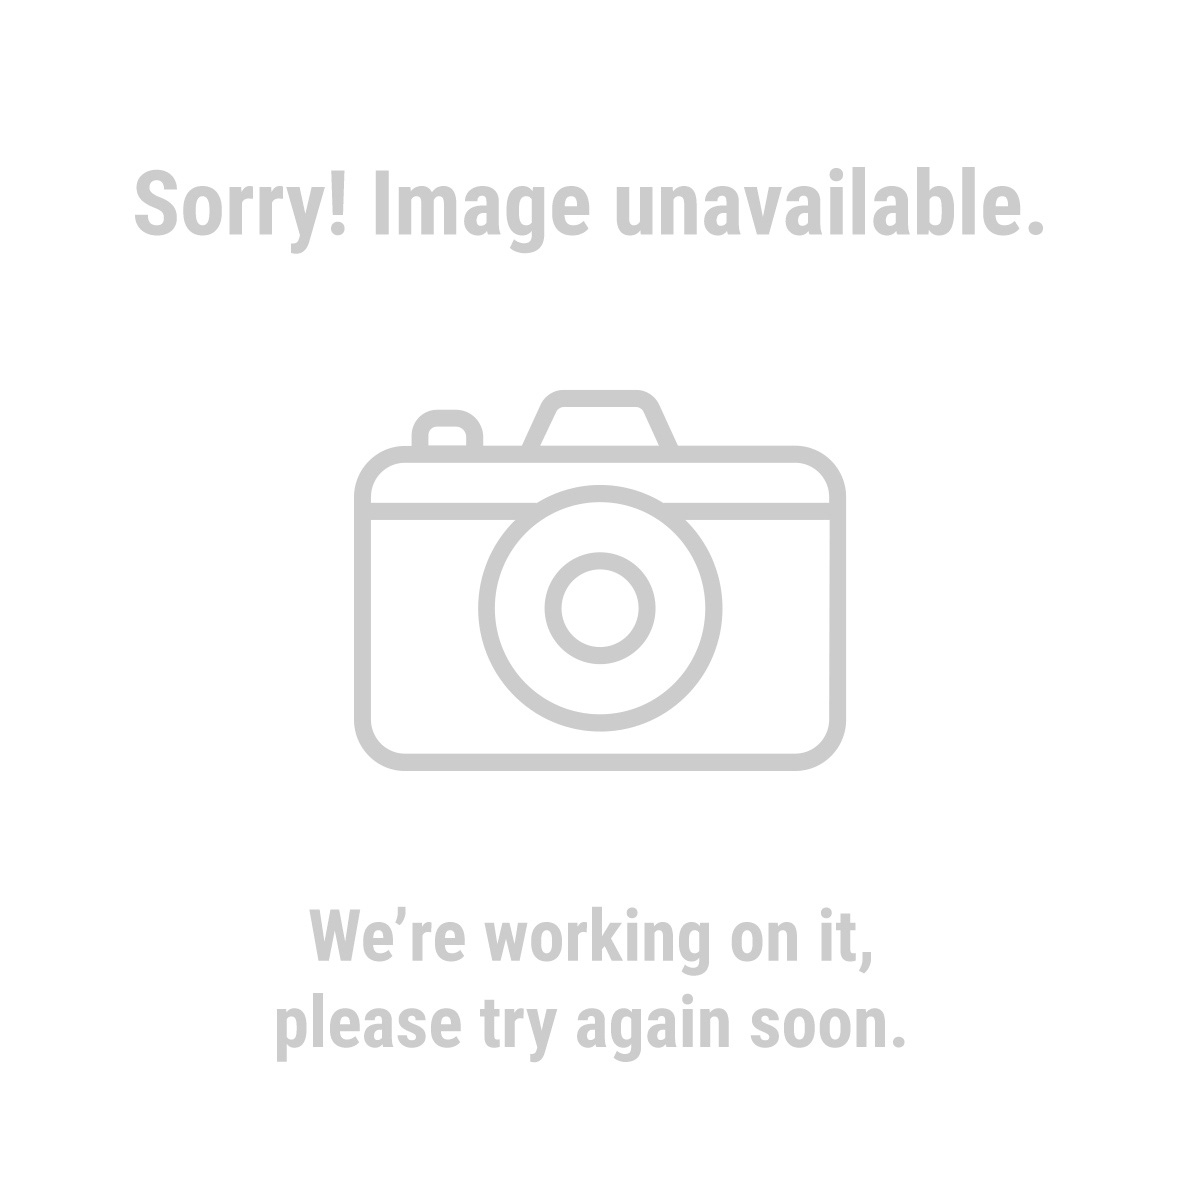 42619 Rechargeable Model Airplane